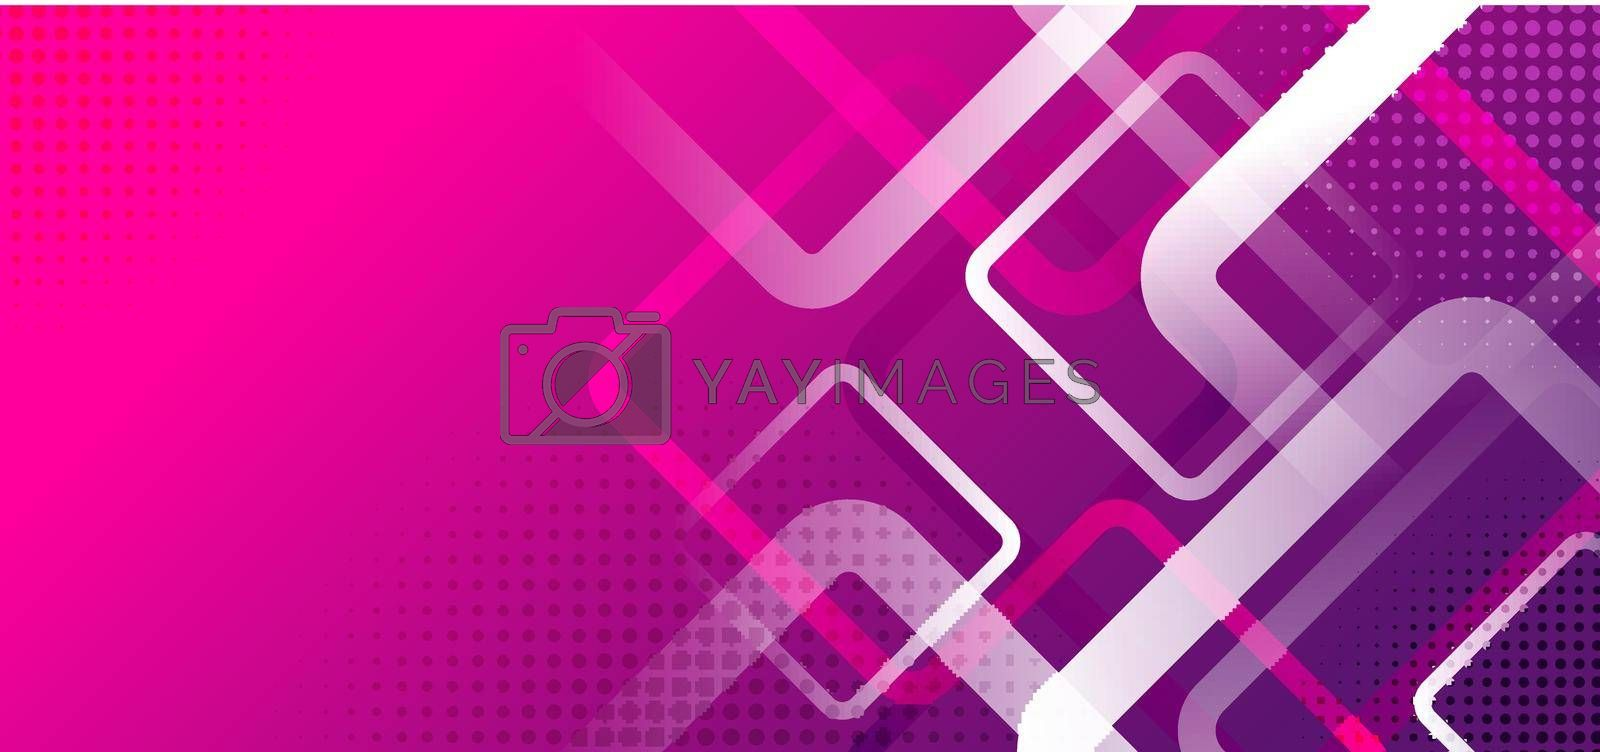 Banner web template design rounded squares geometric white on pink and purple gradient background with space for your text. Vector illustration